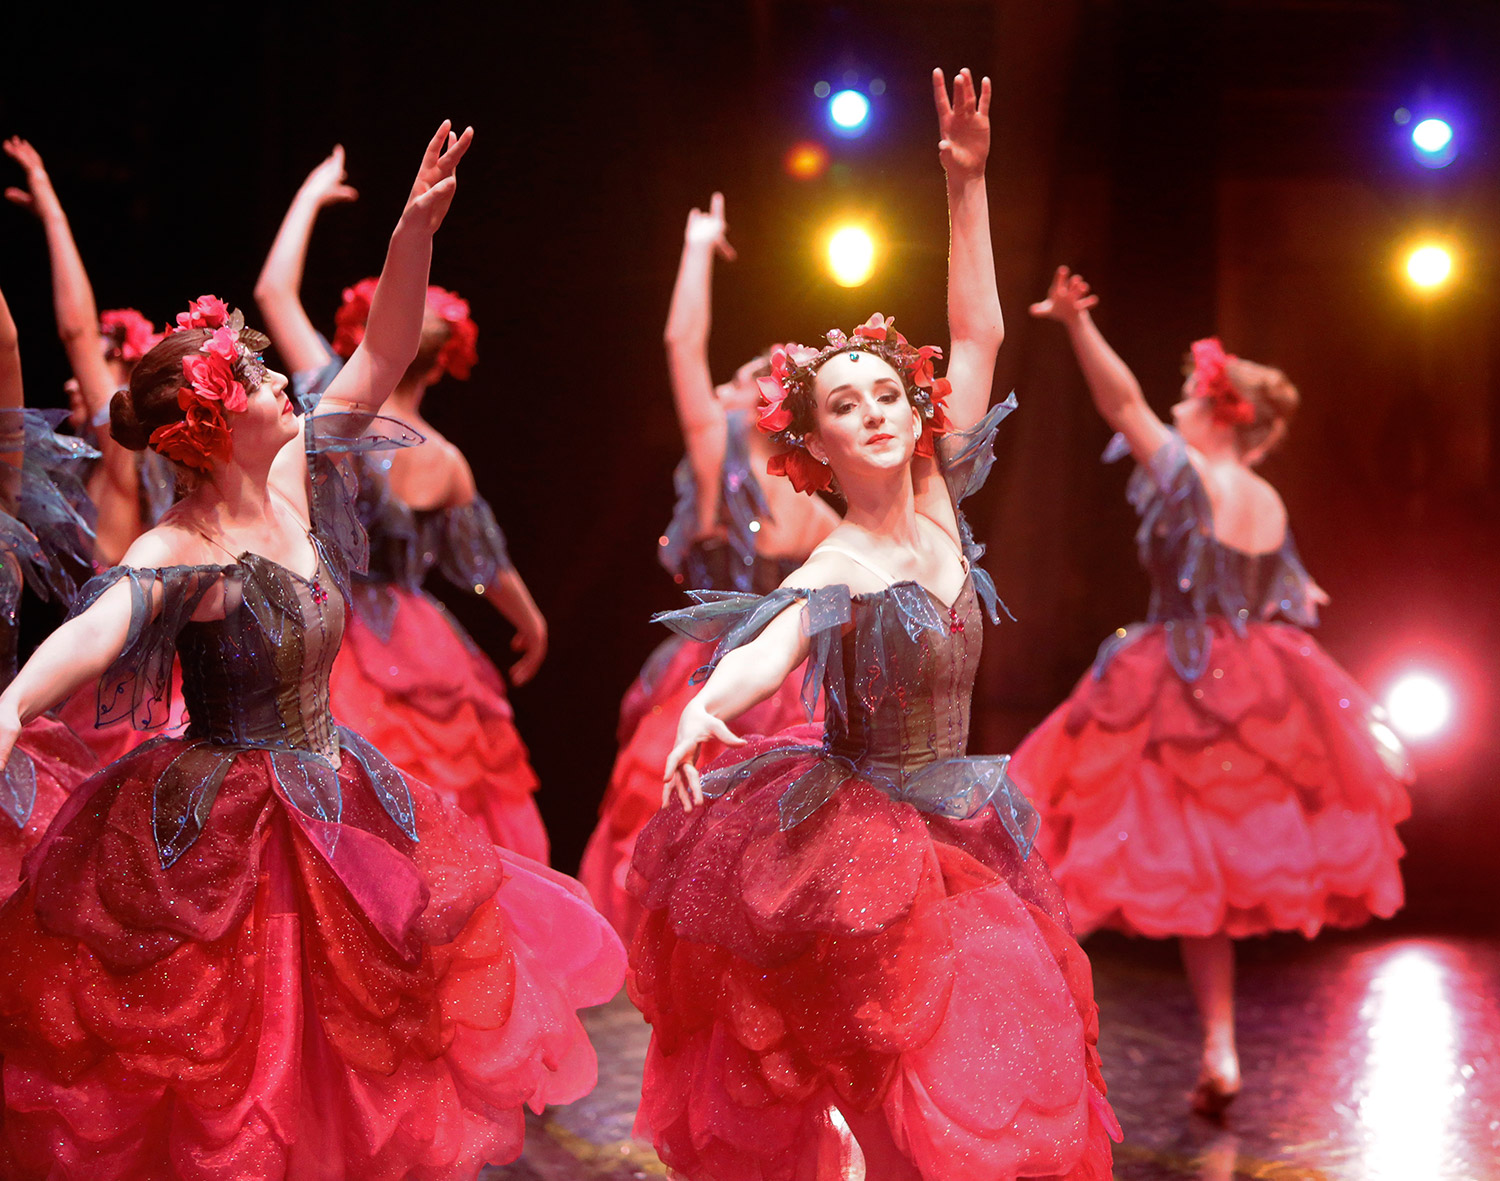 Behind the scenes at Maine State Ballet s 'The Nutcracker' The Portland